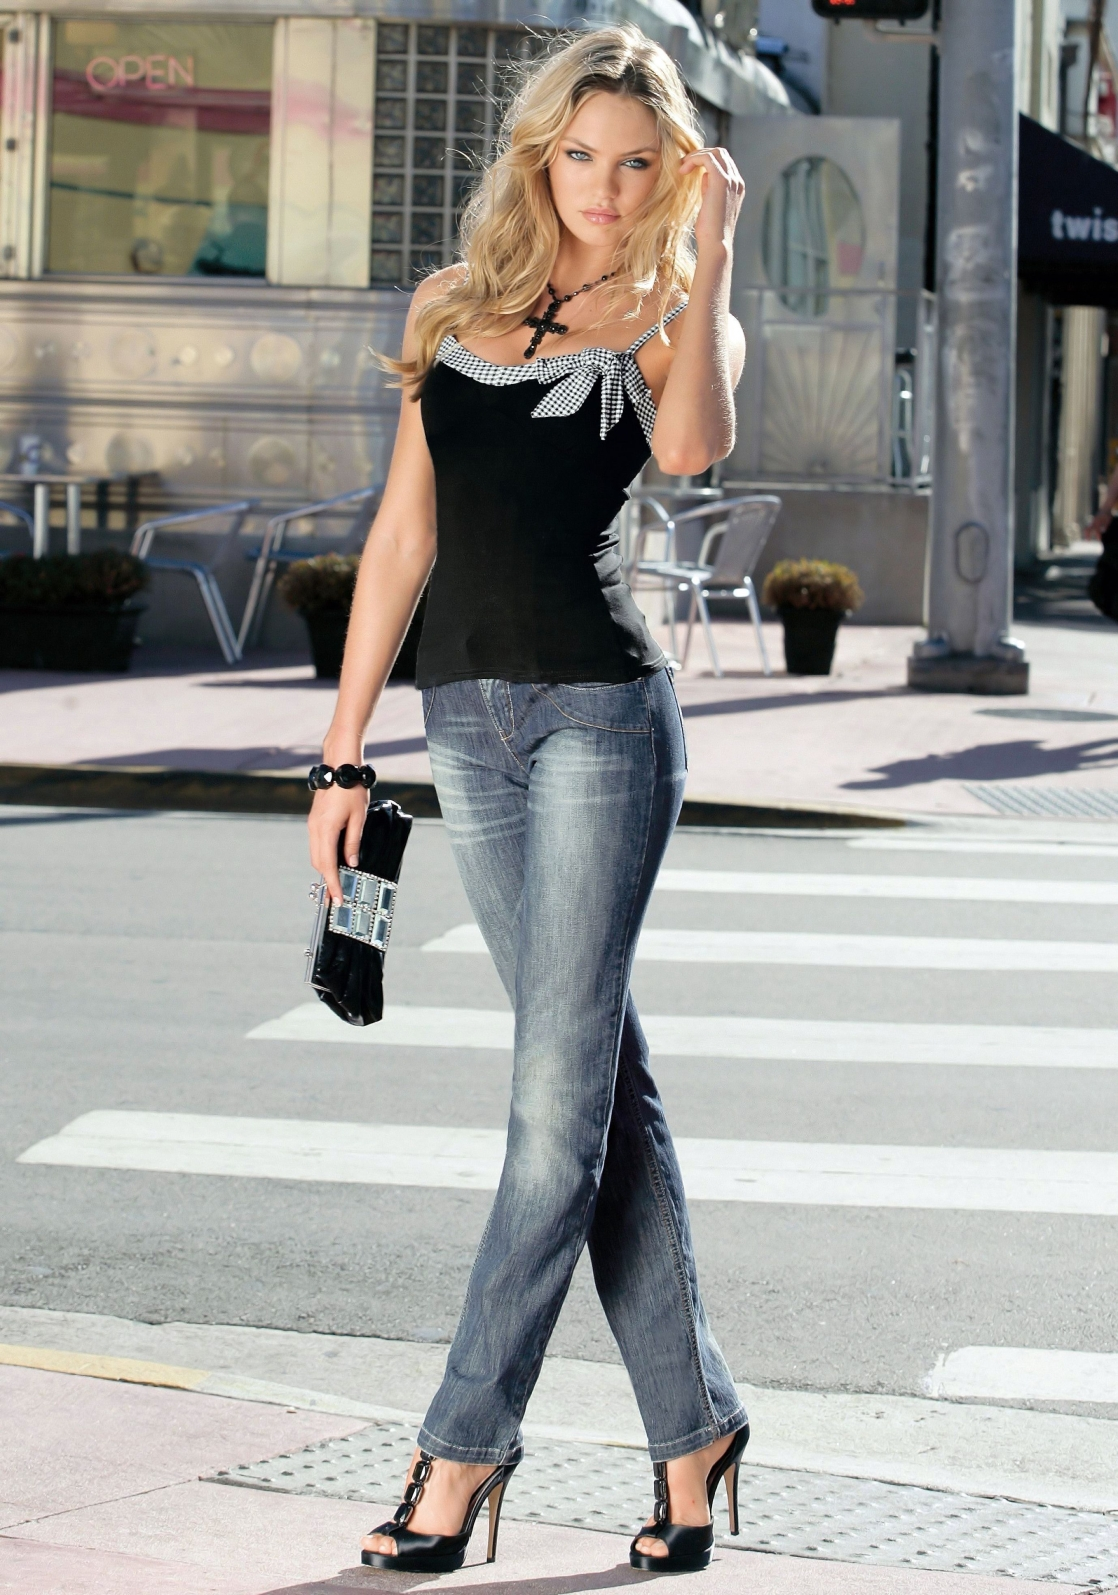 Candice Swanepoel Jeans Pic - Candice Swanepoel Jeans Pic